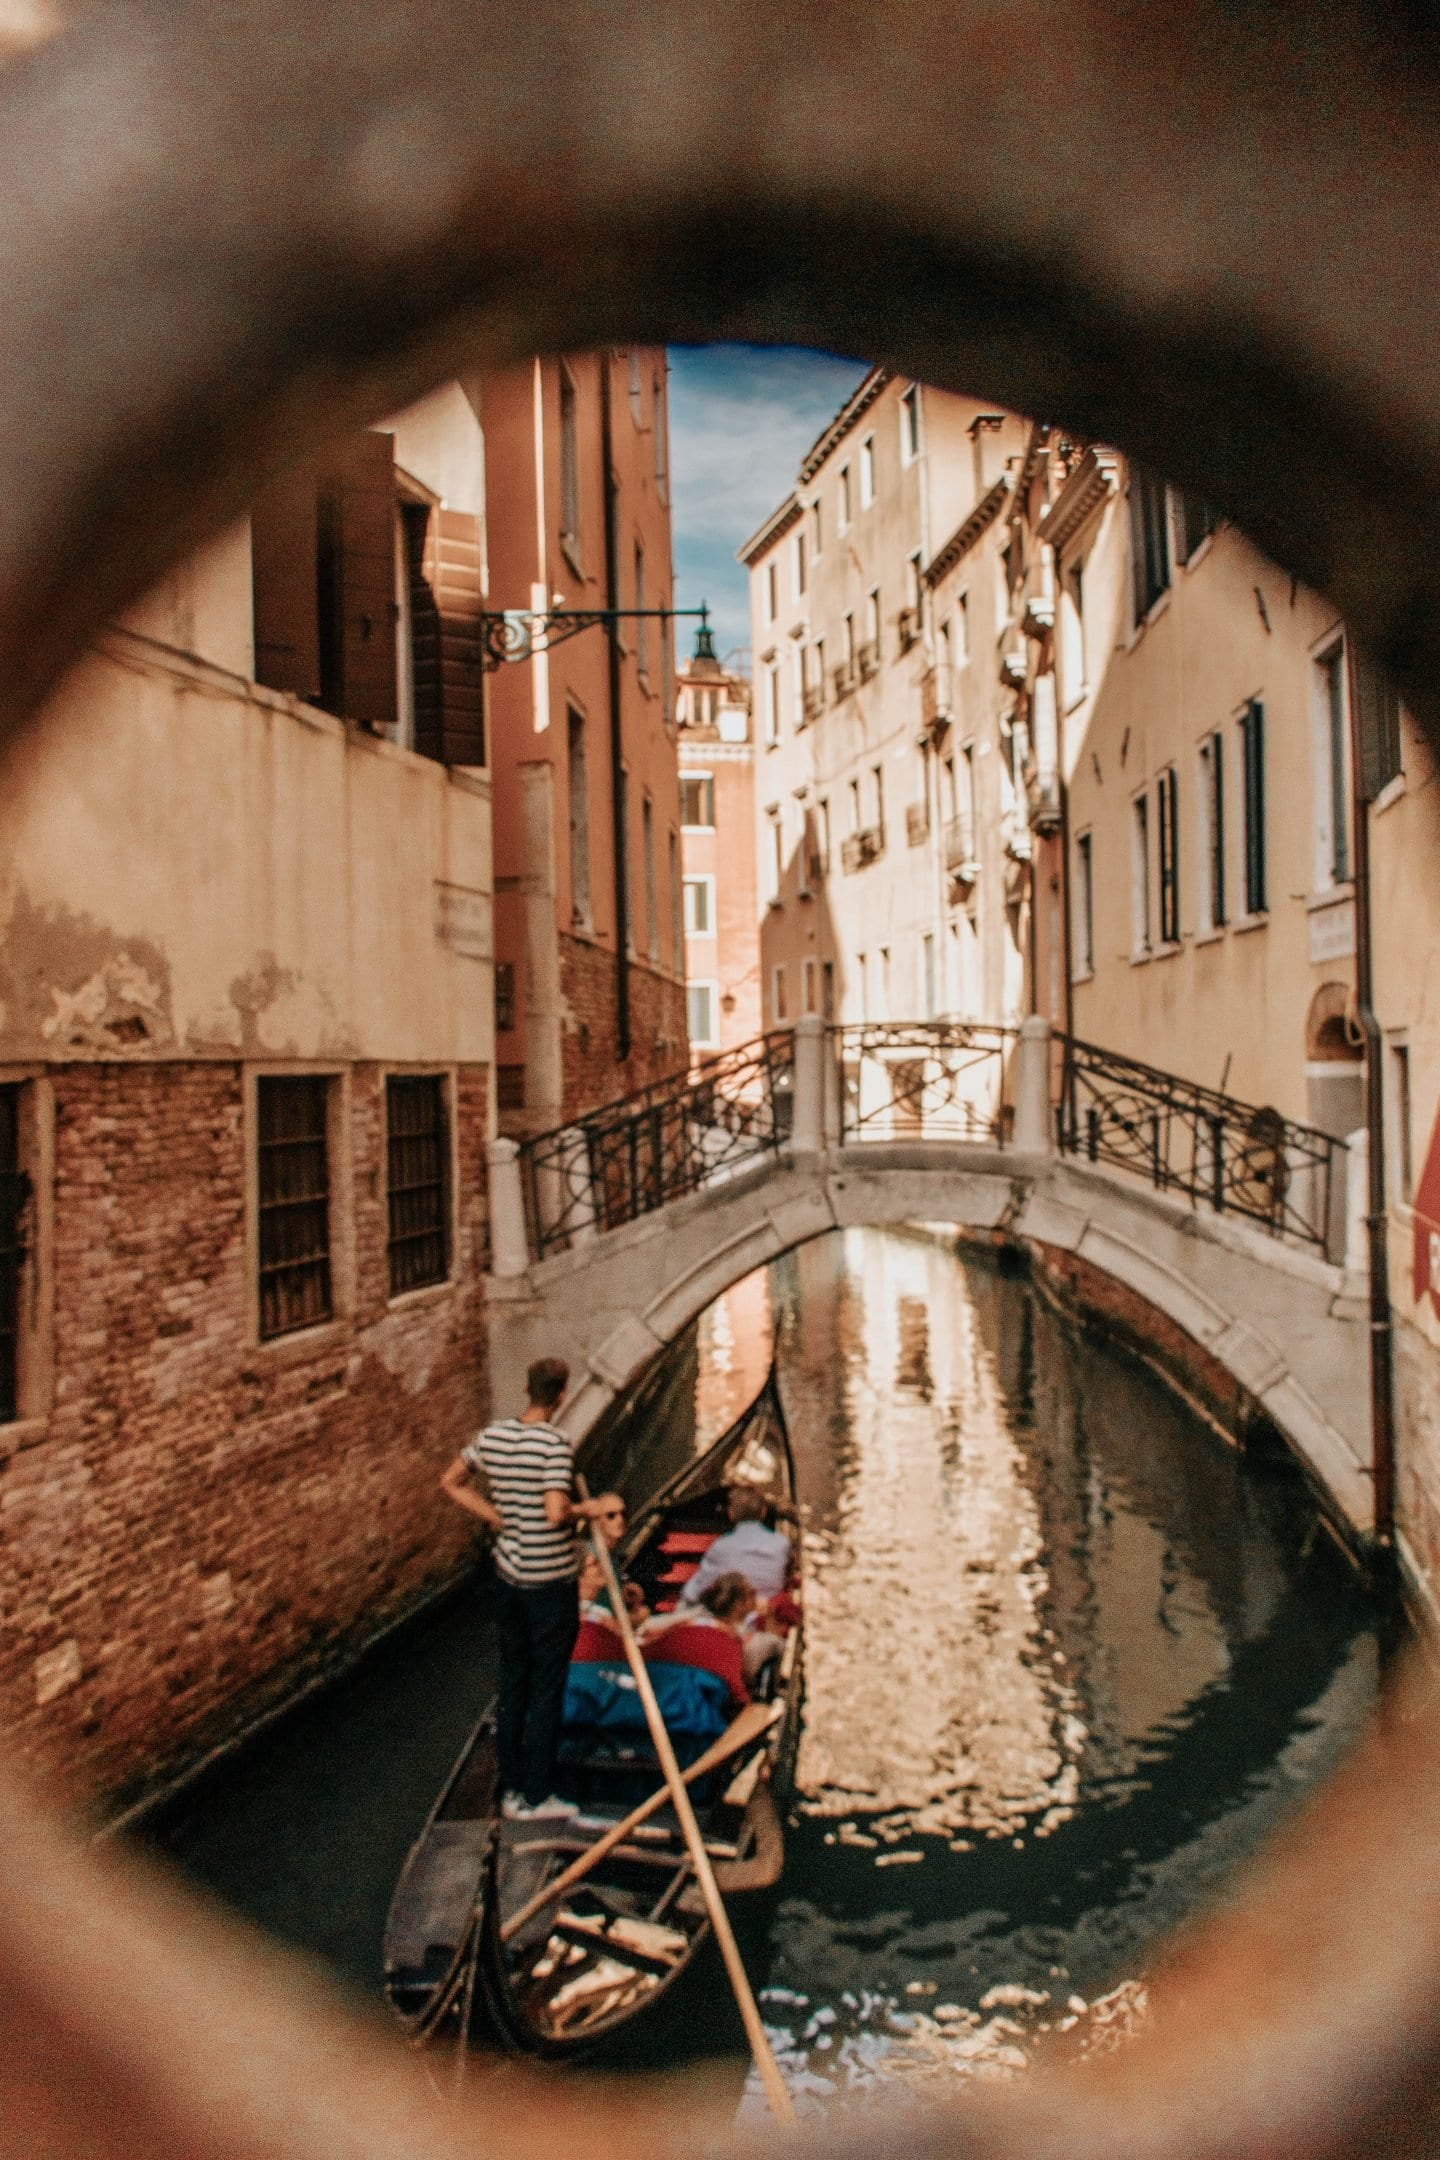 10 Unusual Things To Do in Venice, Italy: The Best Views, Excursions, & More